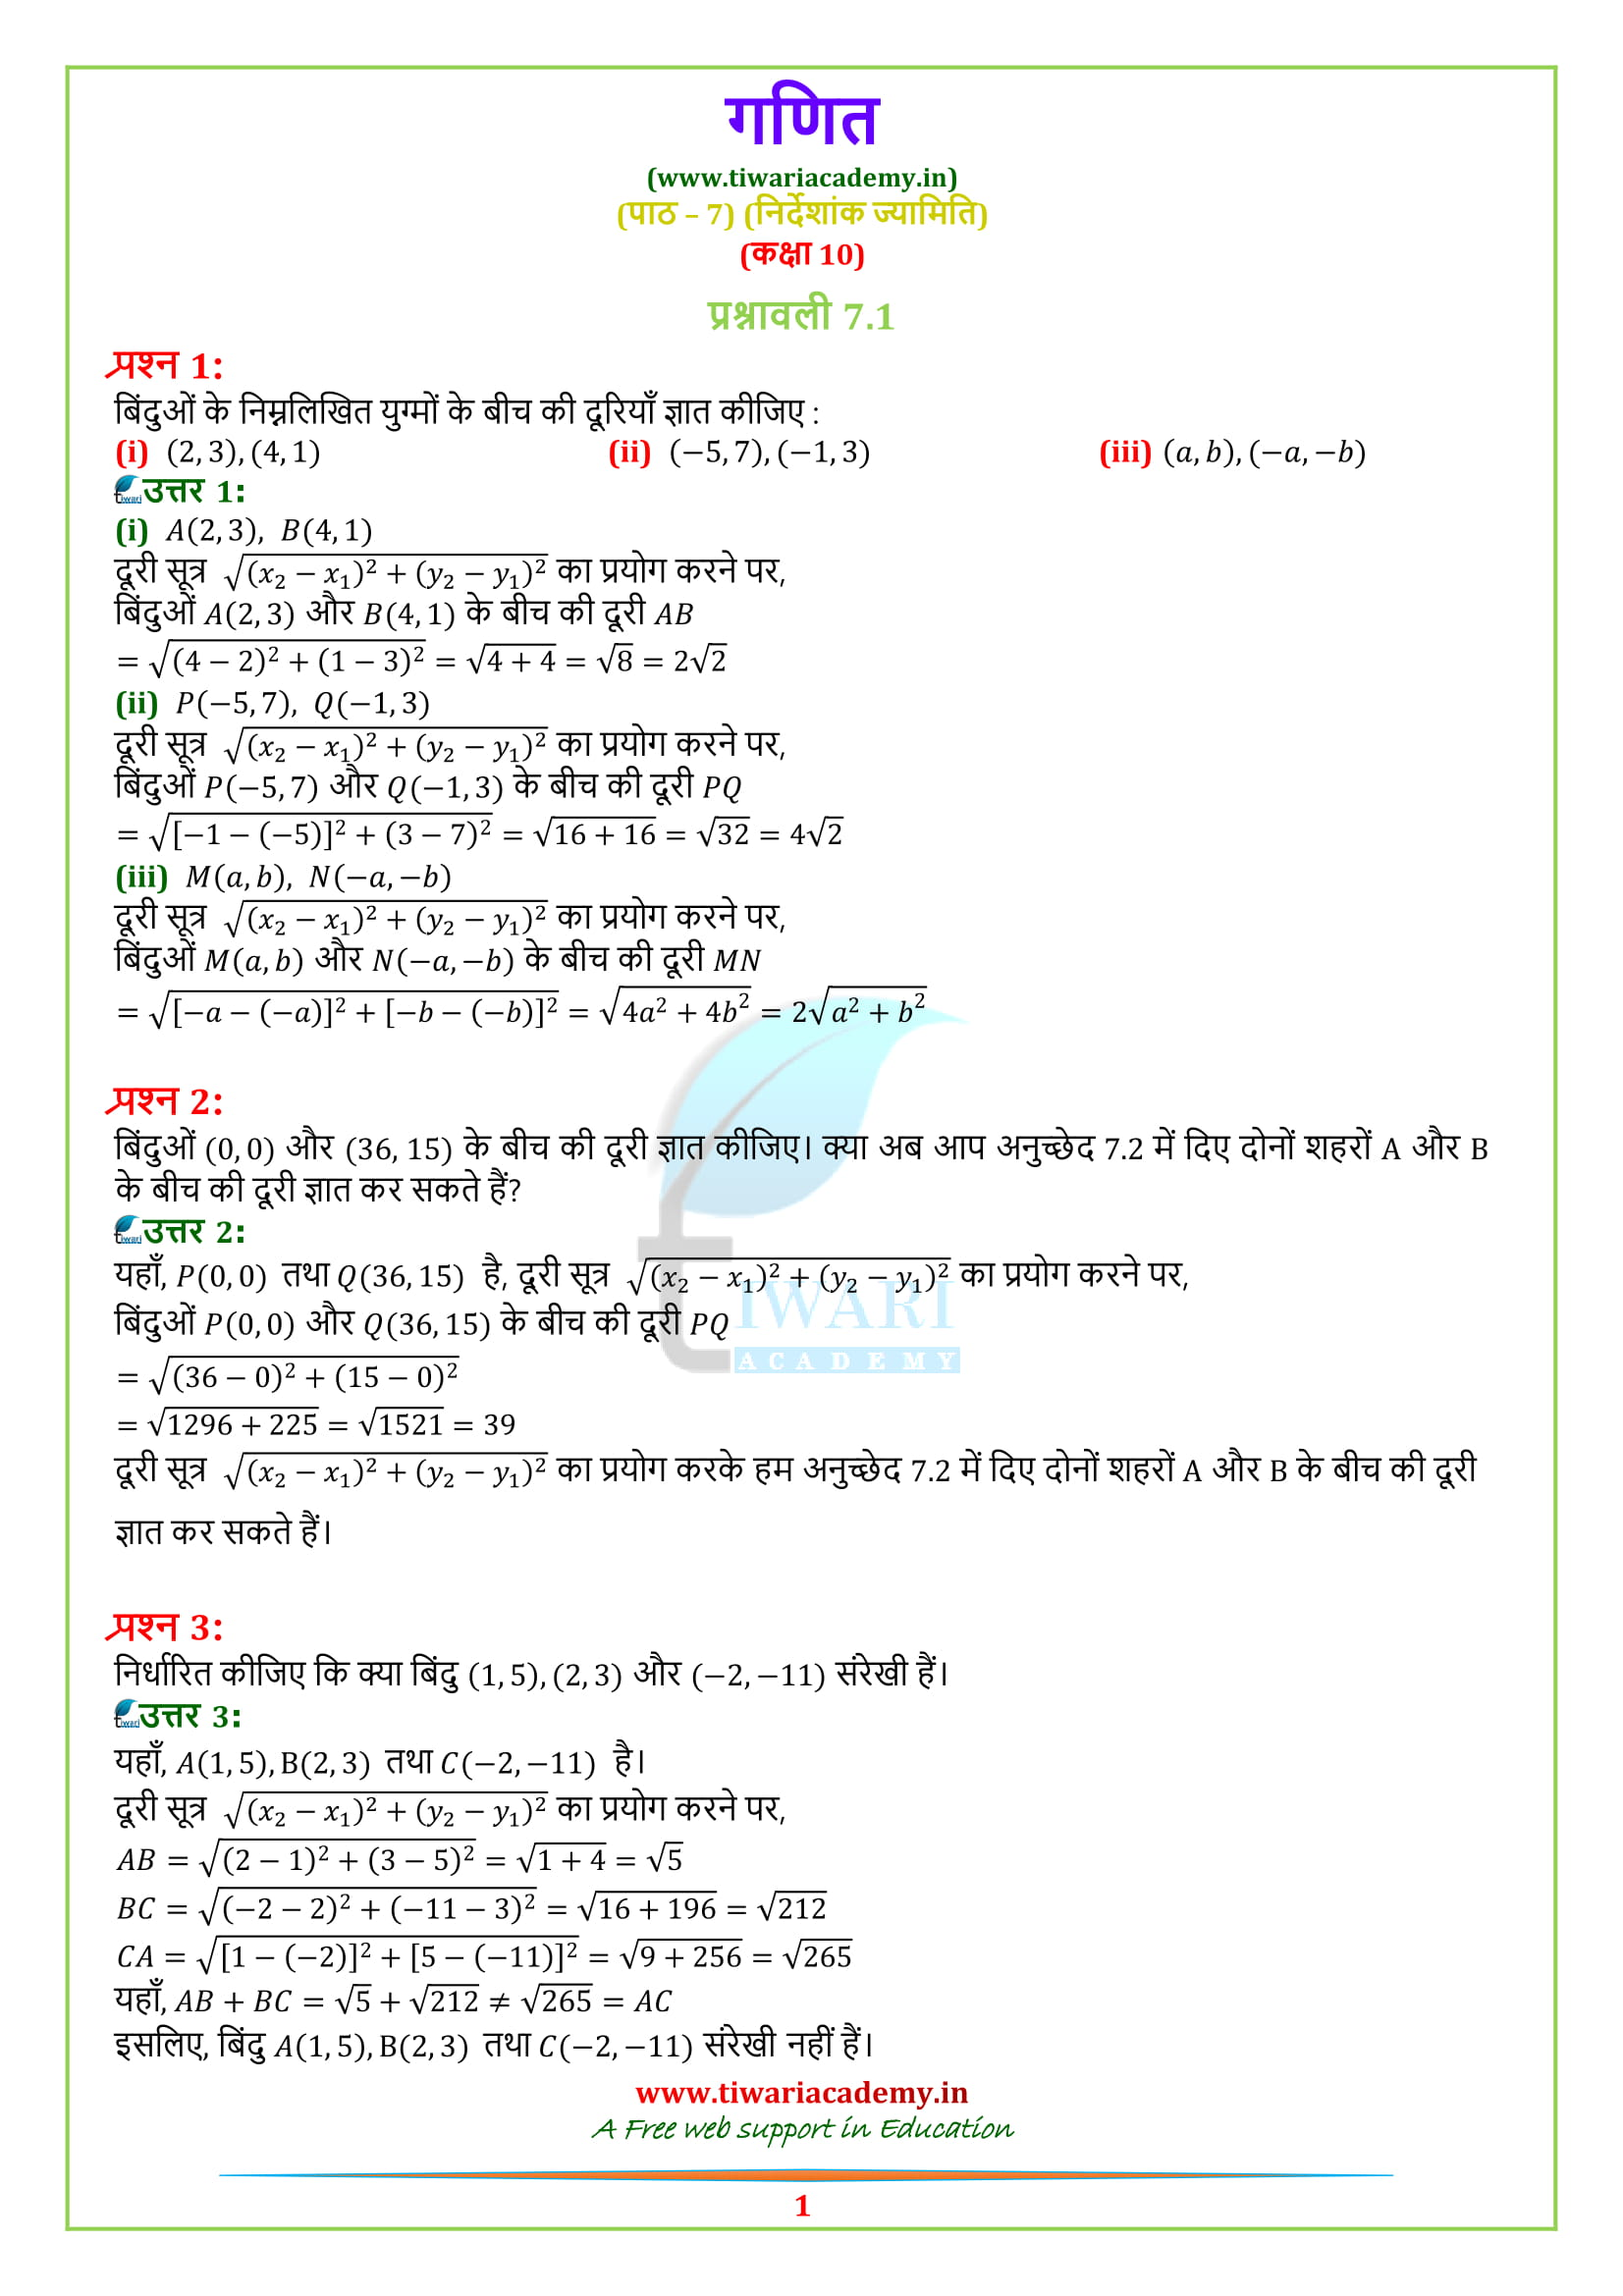 Class 10 Maths Exercise 7.1 all question answers in hindi